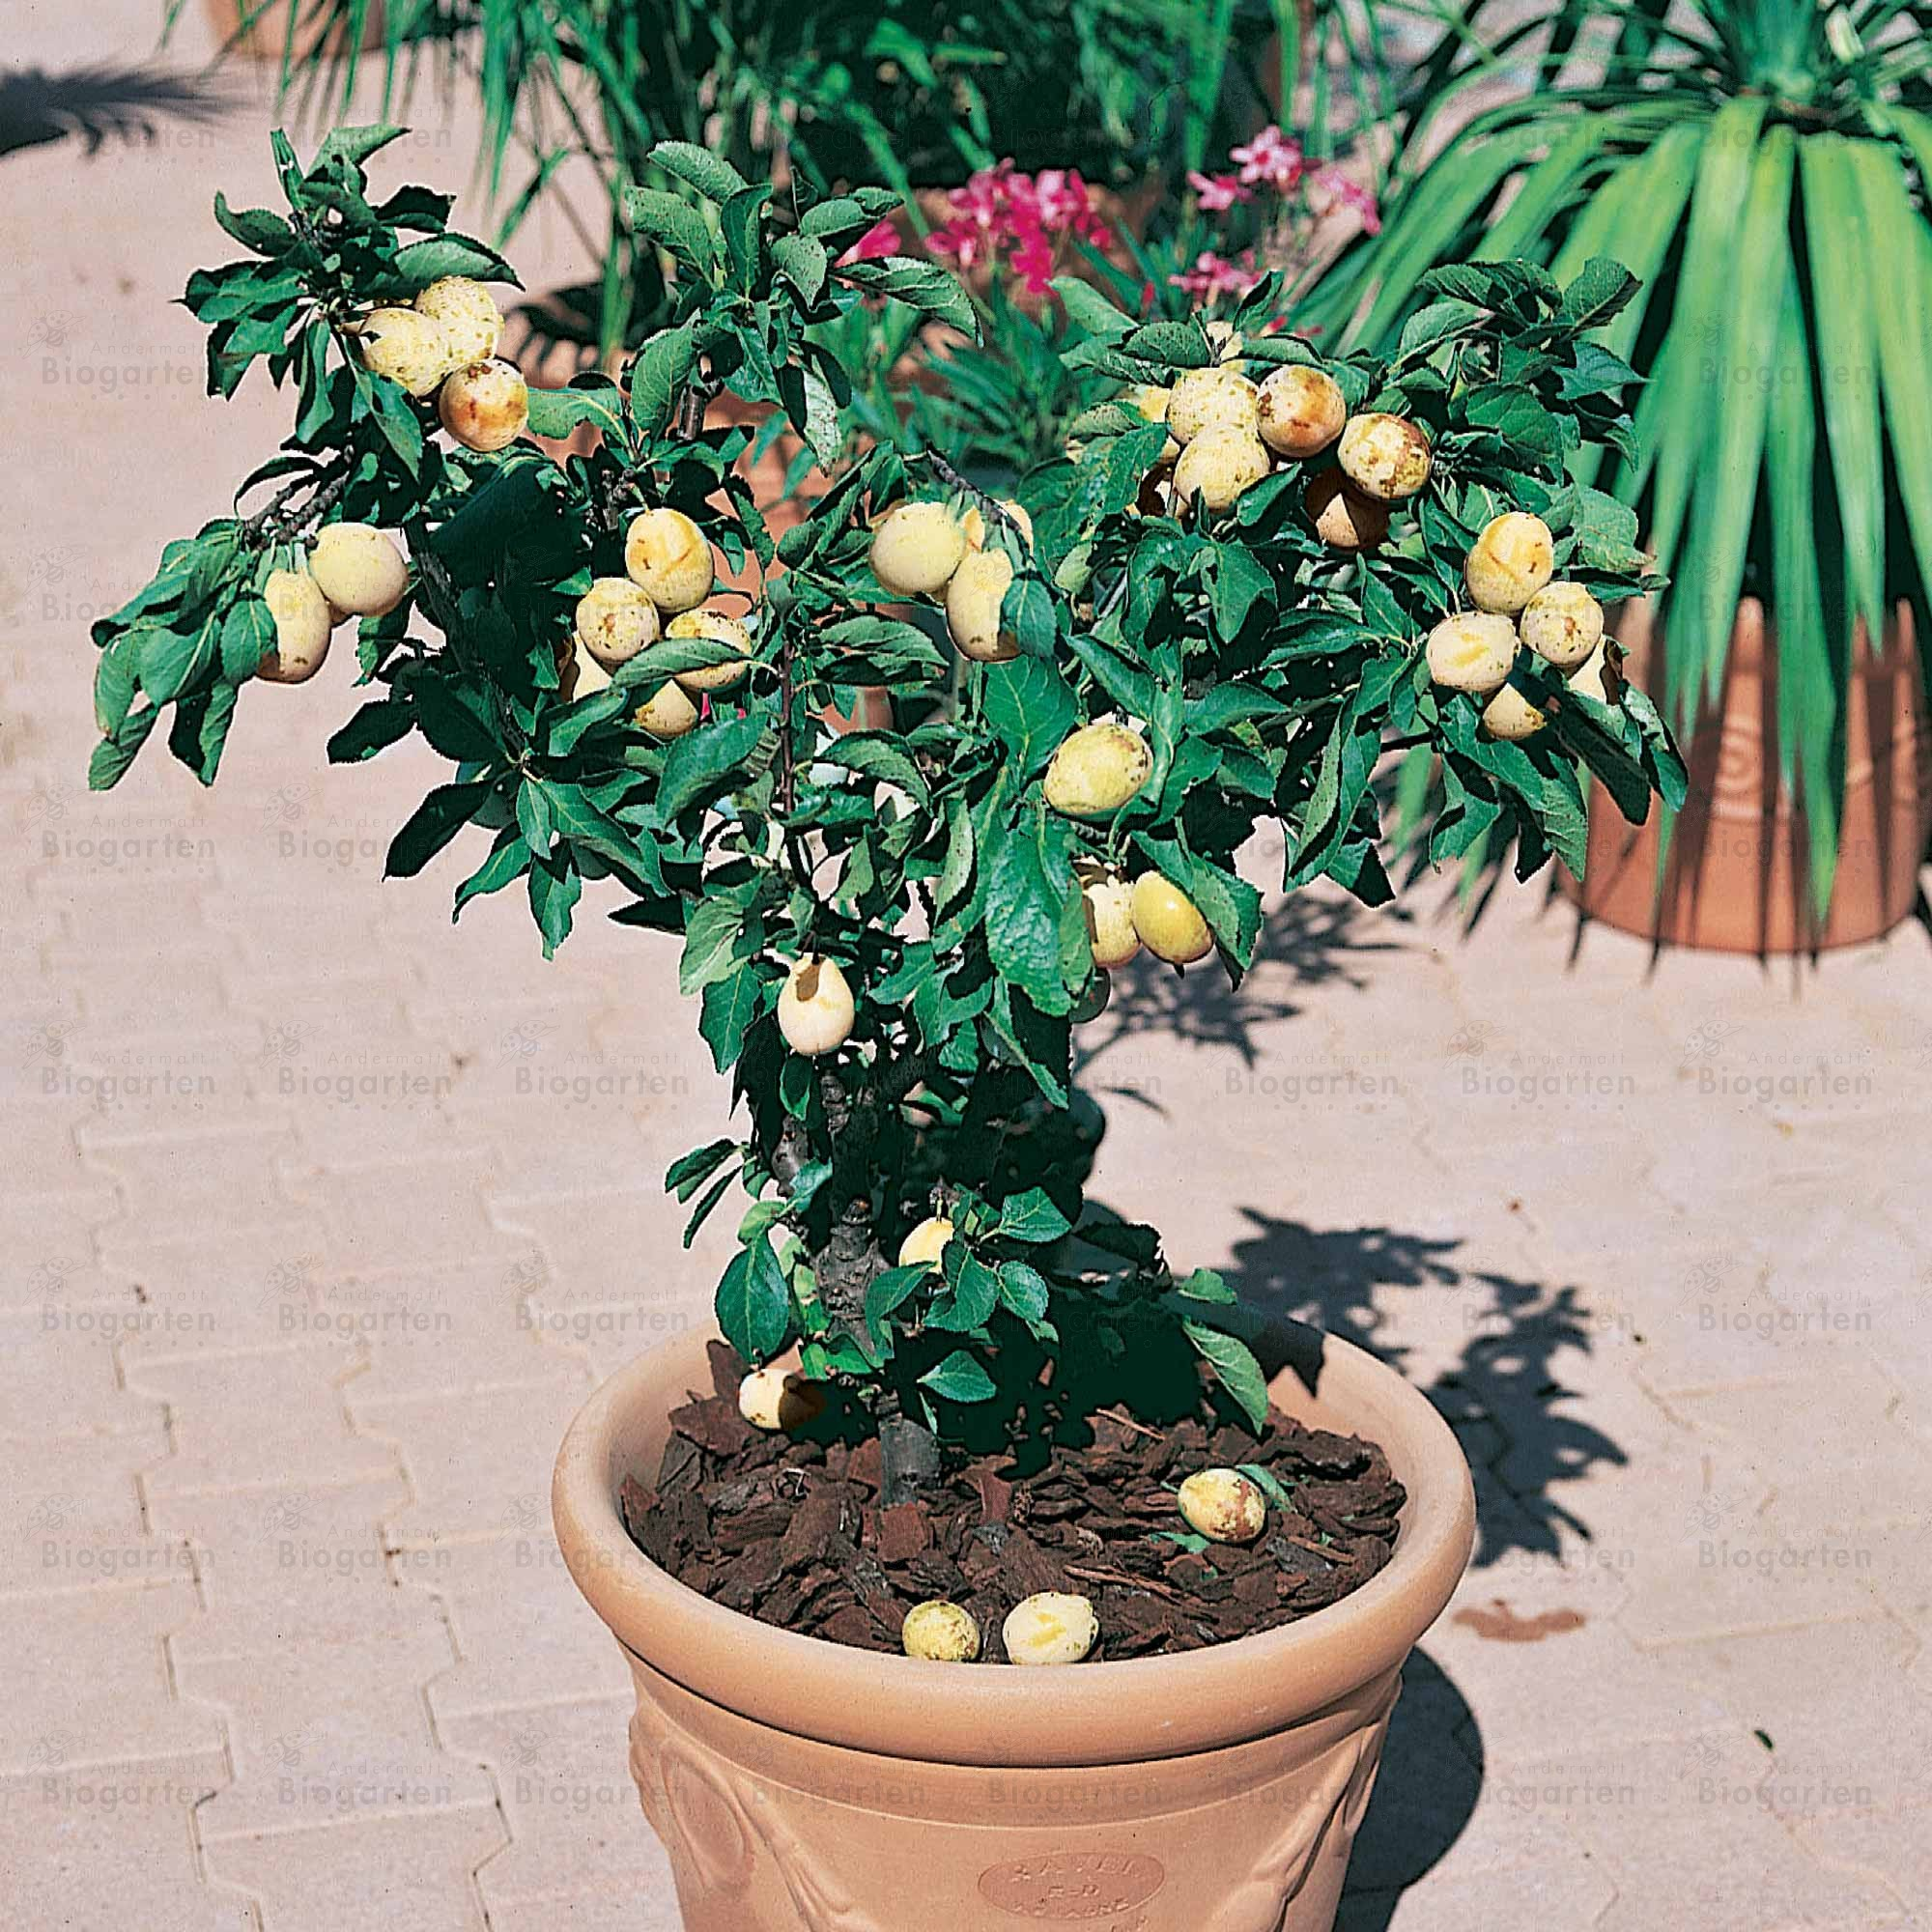 Arbre Fruitier En Pot Pour Terrasse Prunier Nain Goldust Fruits Et Baies Plantes